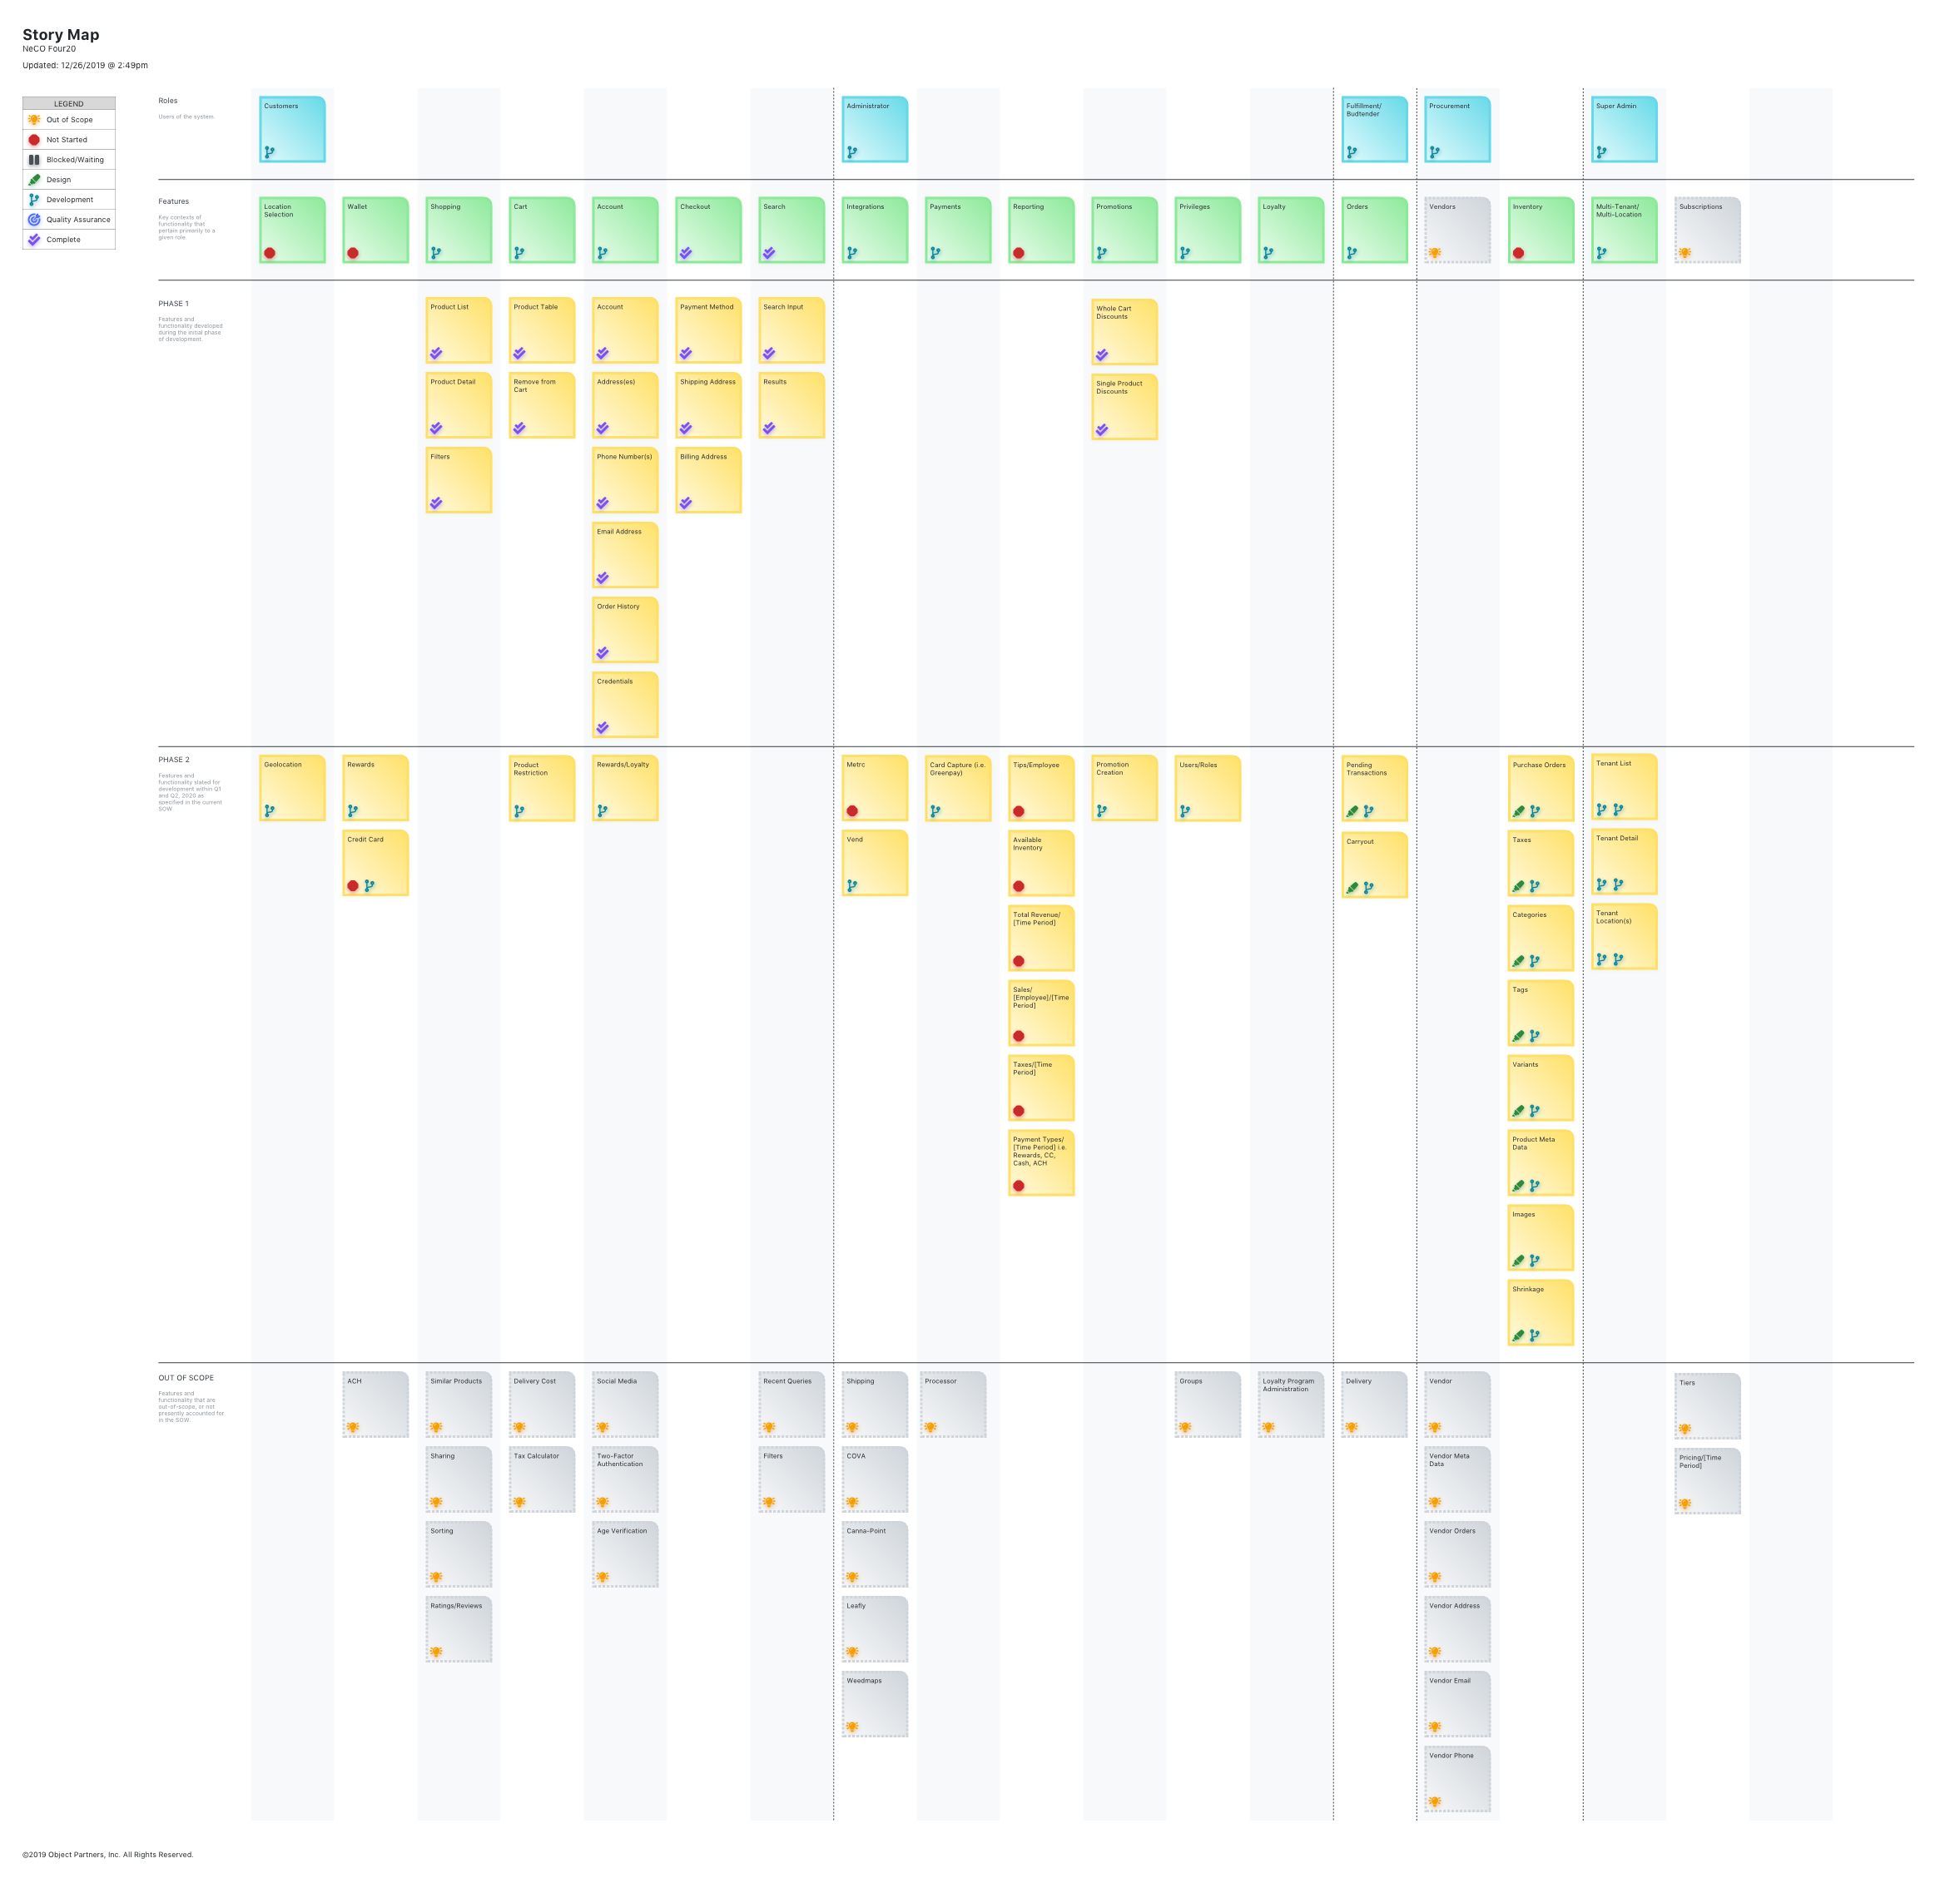 A Story Map was created to prioritize software design and development tasks